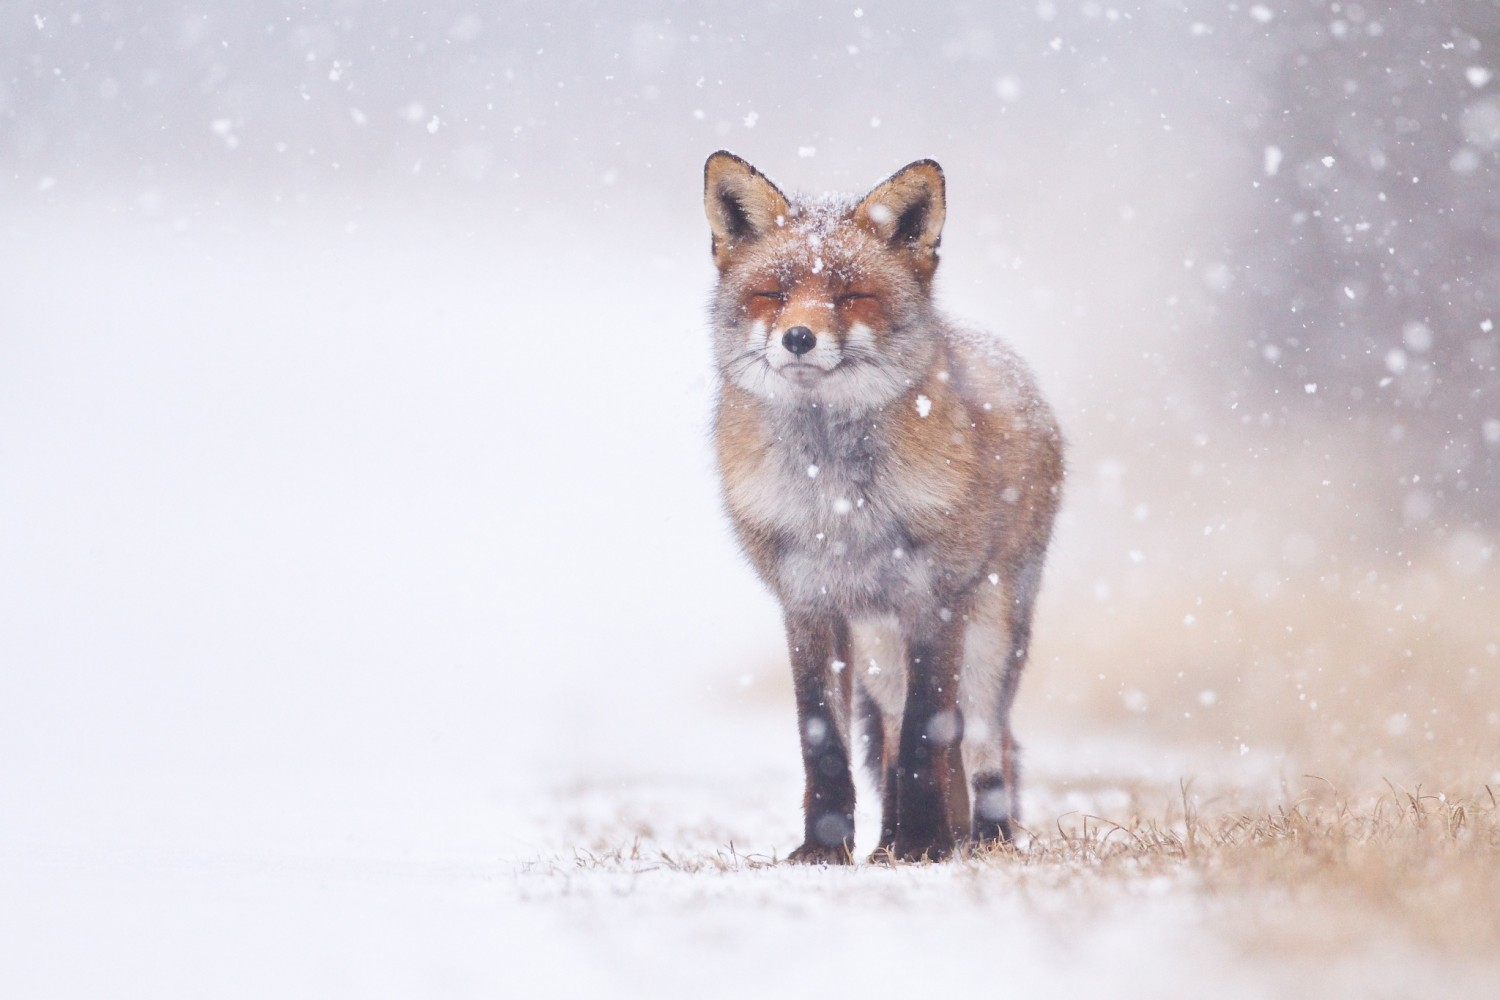 30 Adorable Photos Of Foxes In The Snow